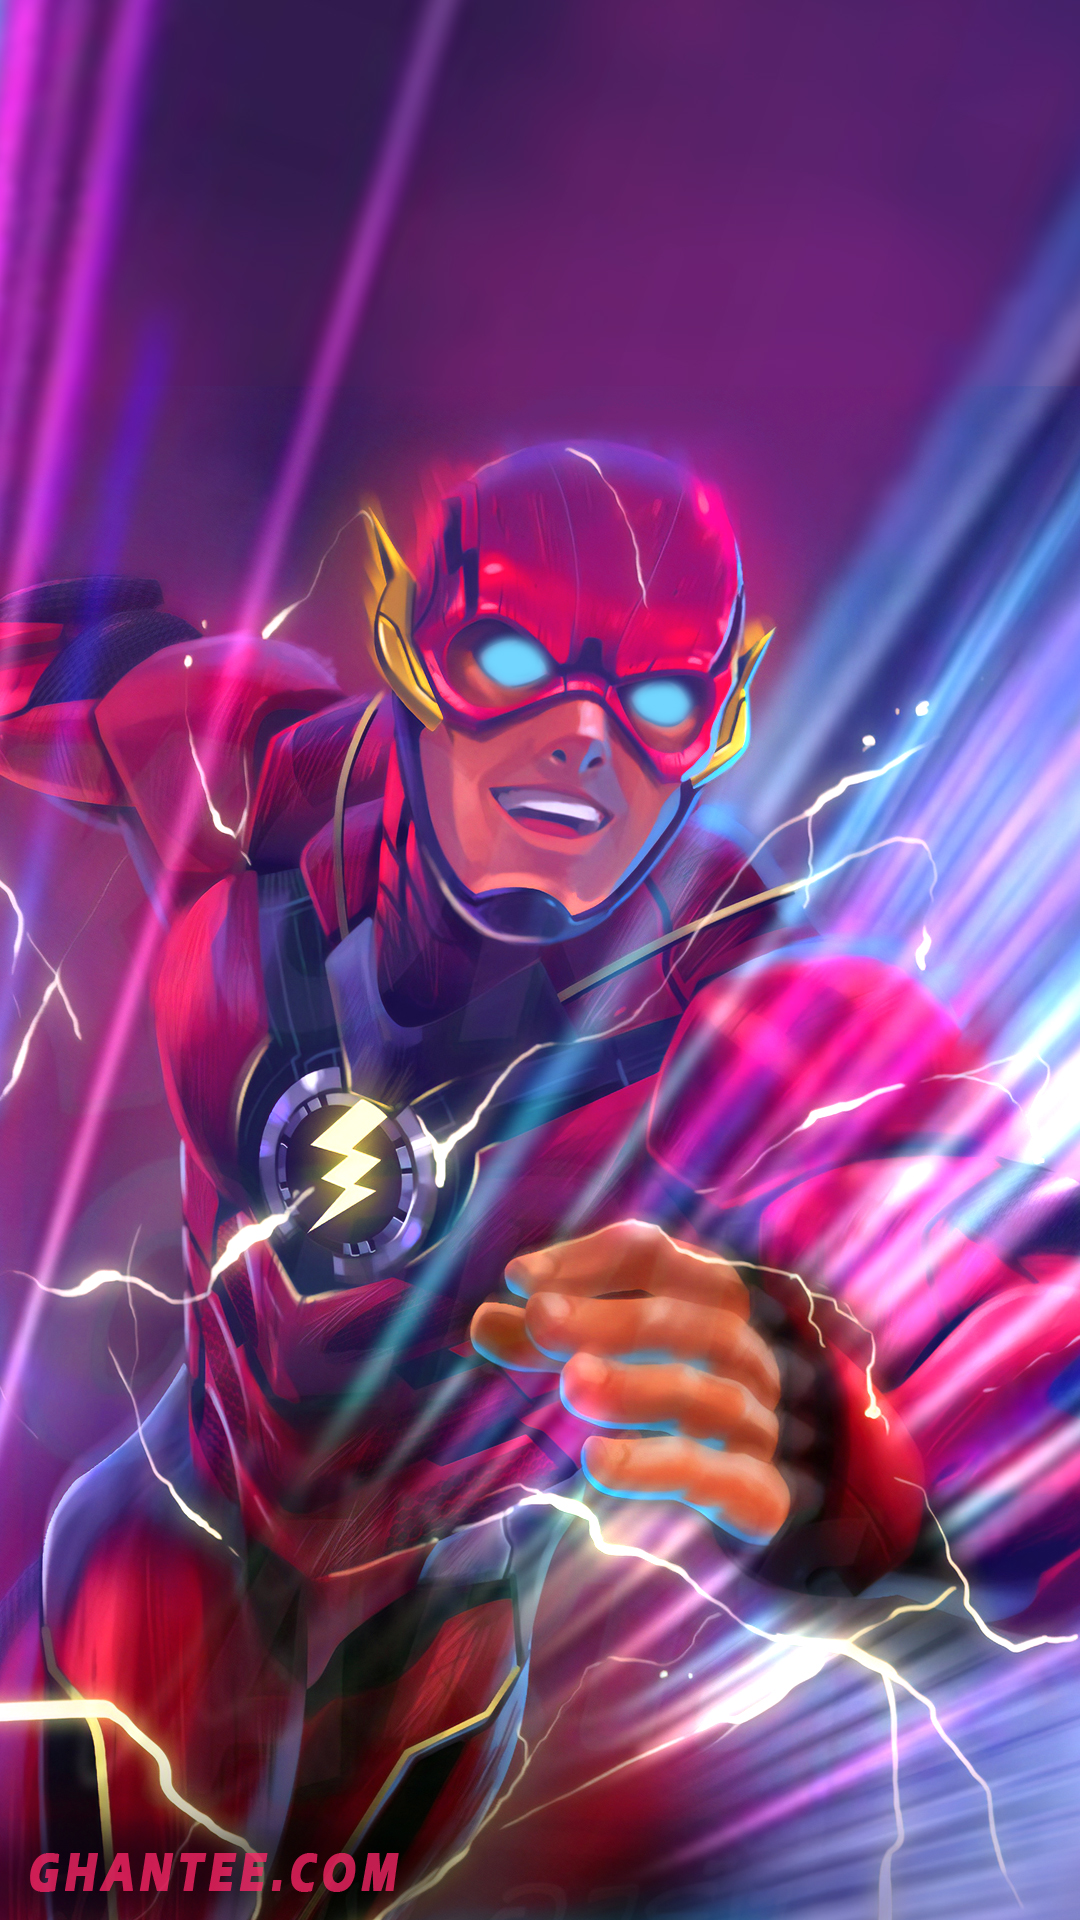 flash wallpaper hd for android and iphone | 1080p